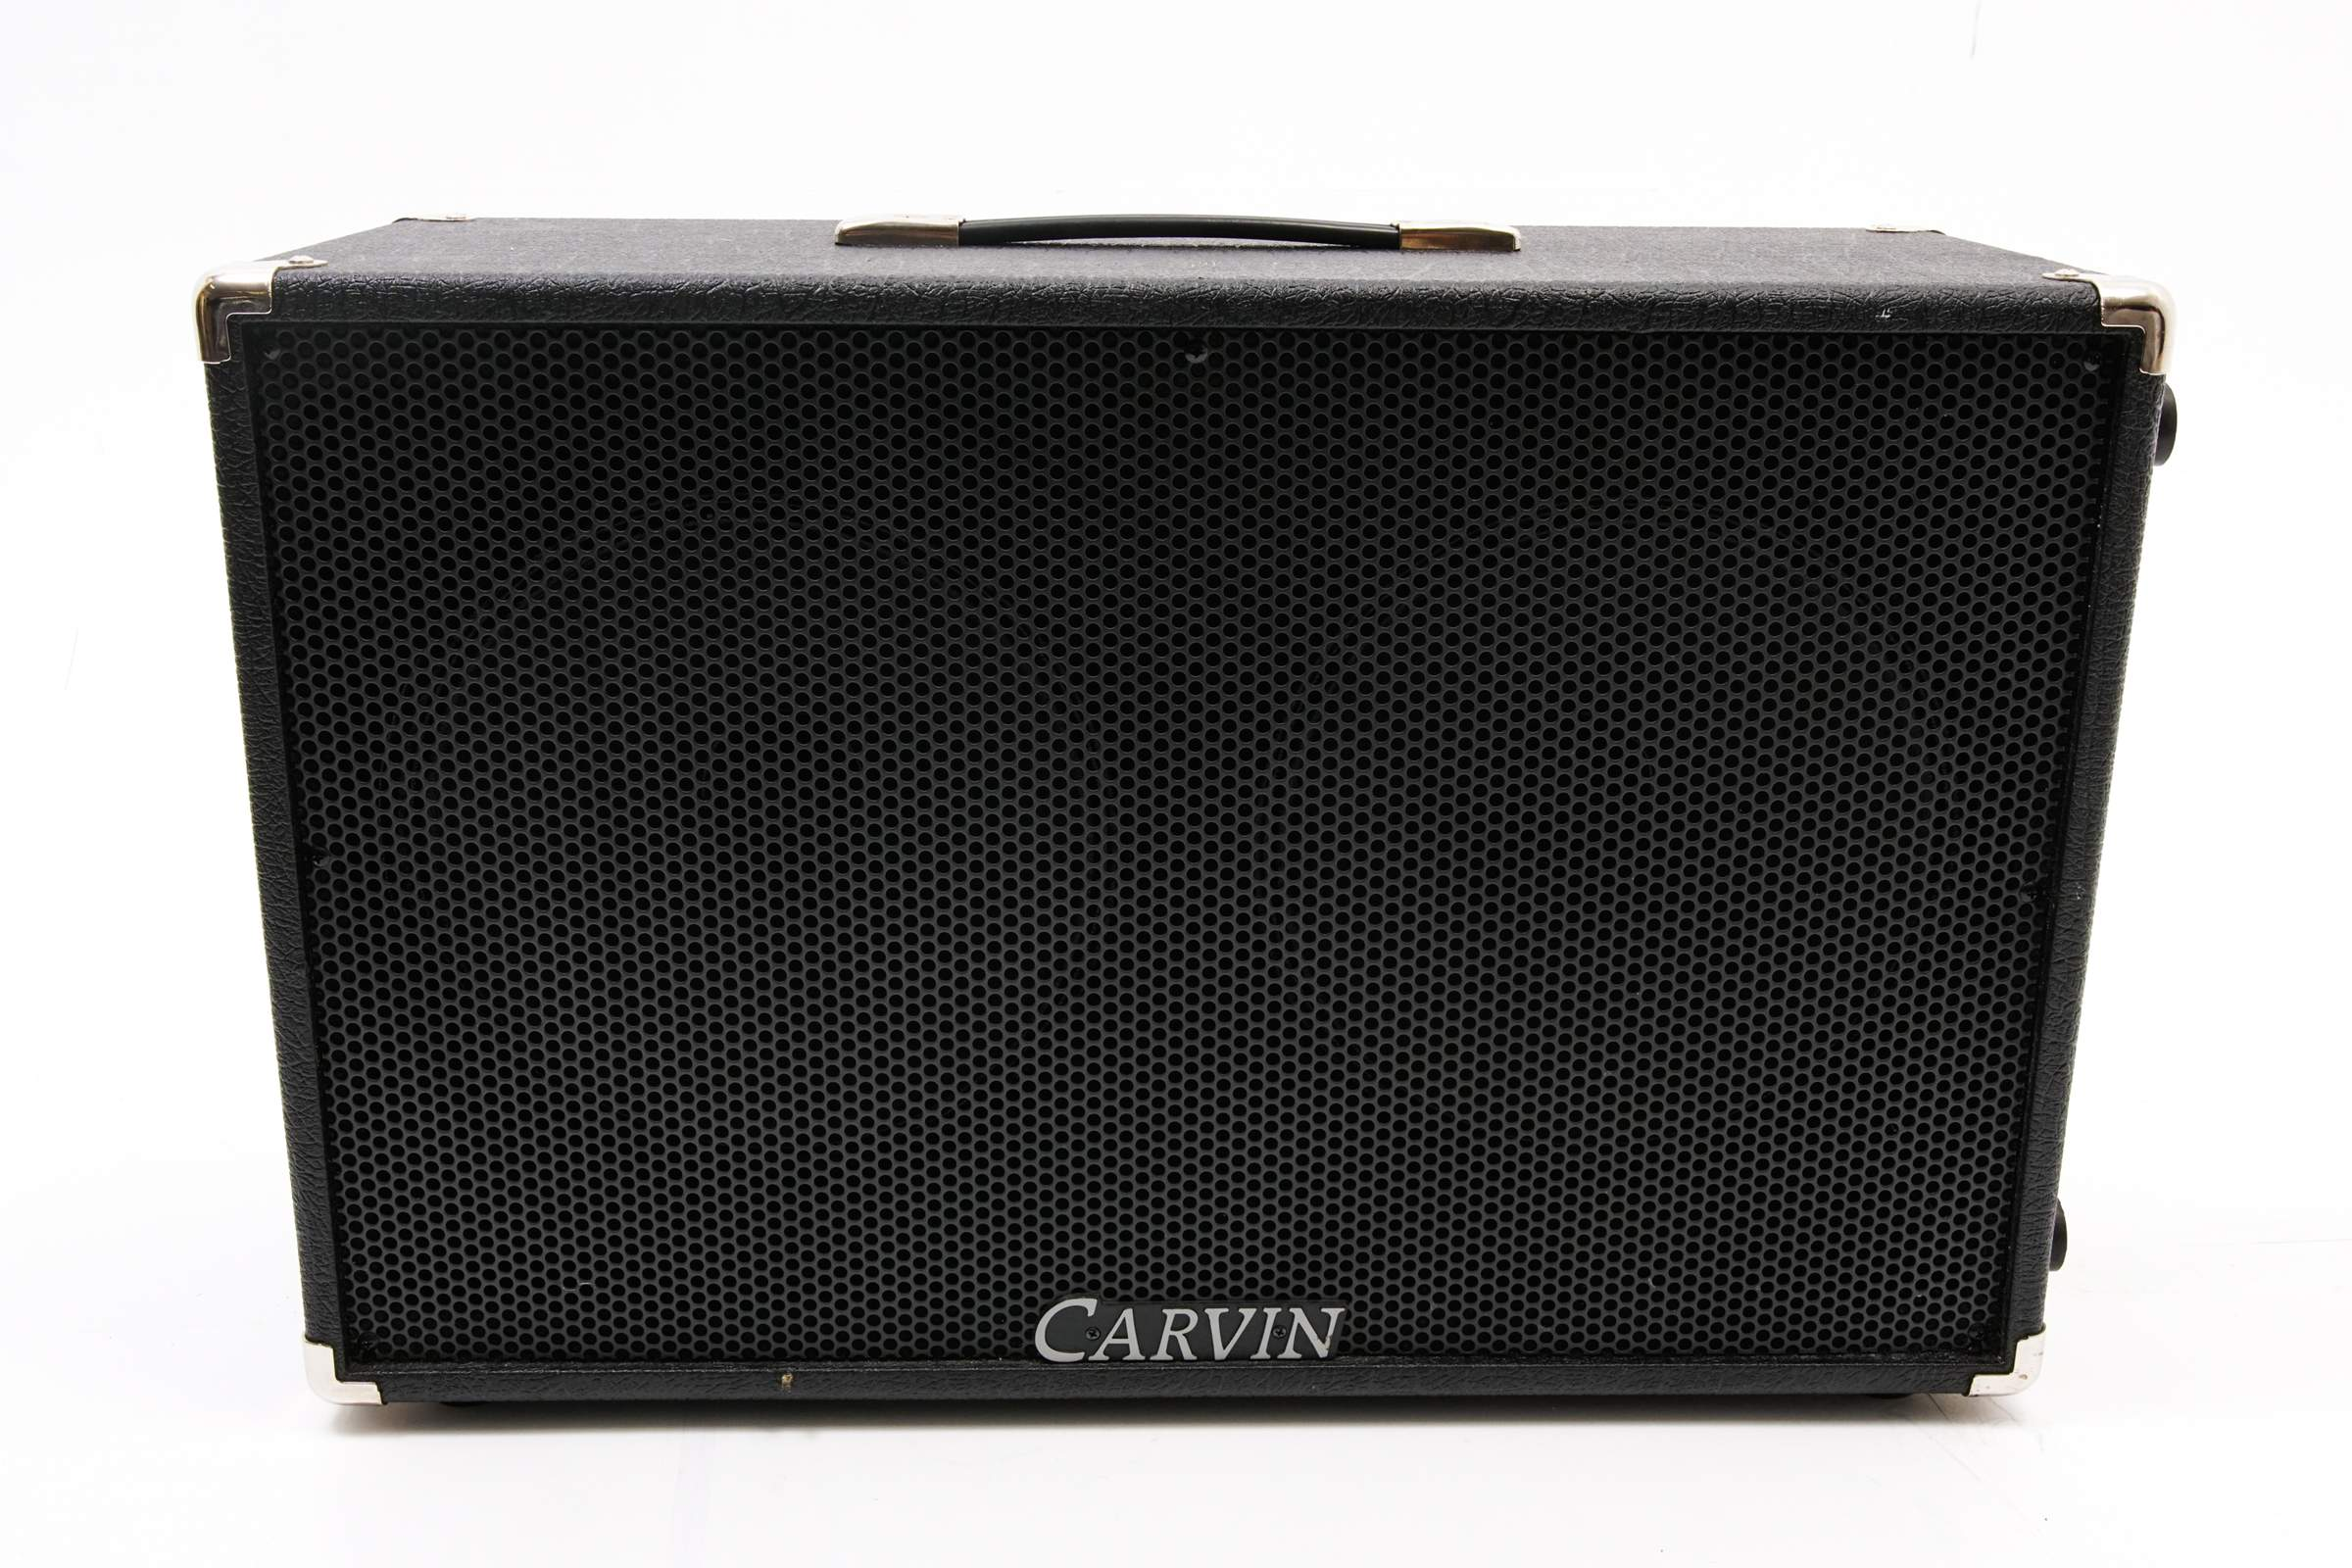 Carvin 2x12 Guitar Cab - Carvin 2x12 Guitar Cab - Rent from $28/month